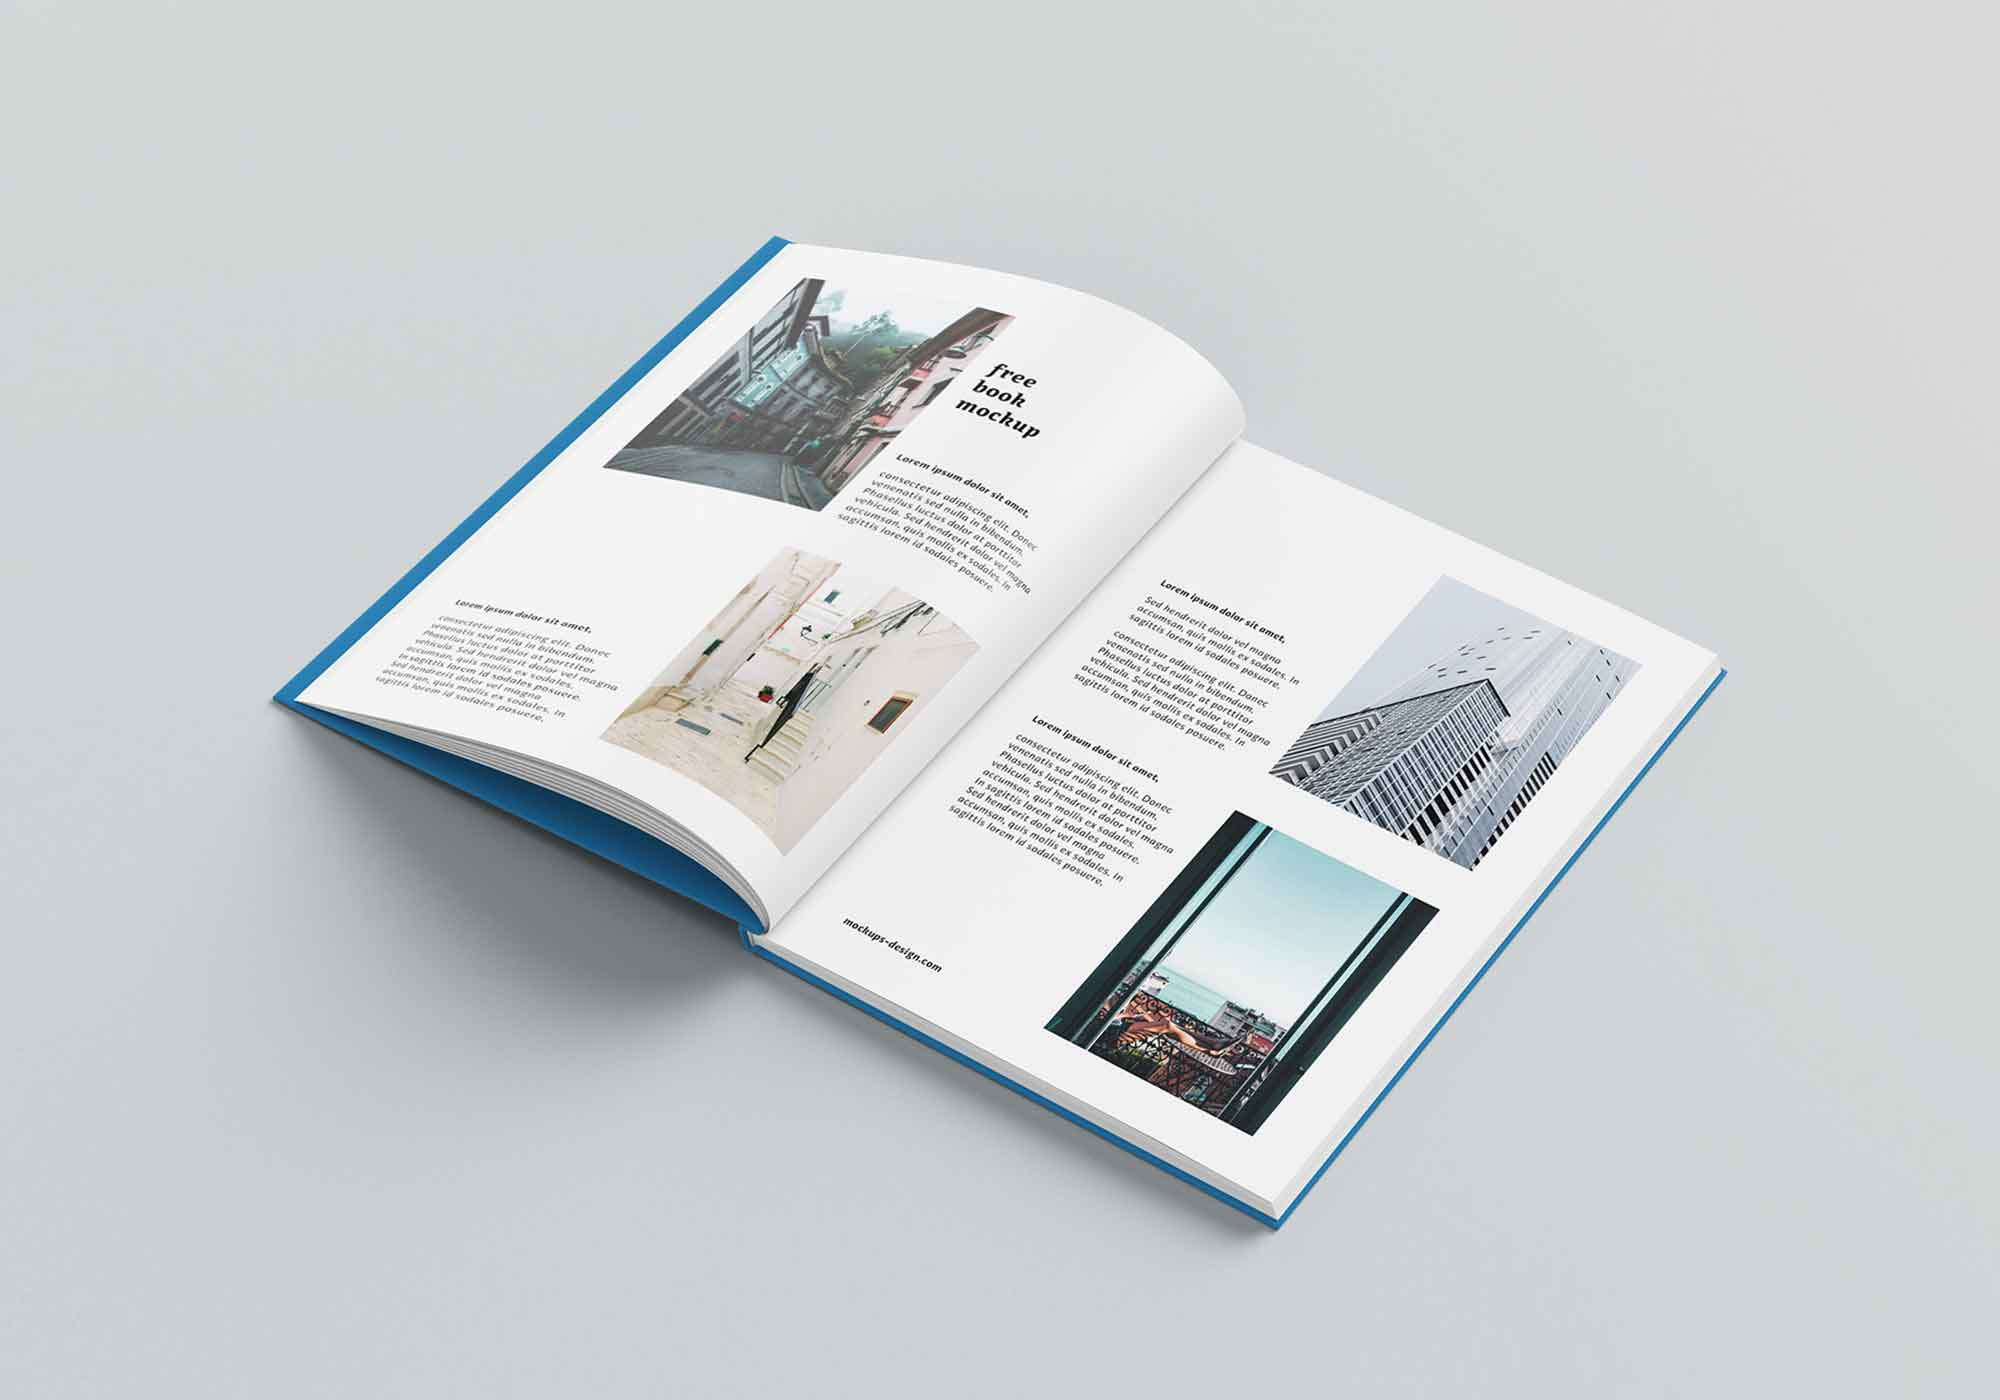 Thin A4 Hardcover Book Mockup 4